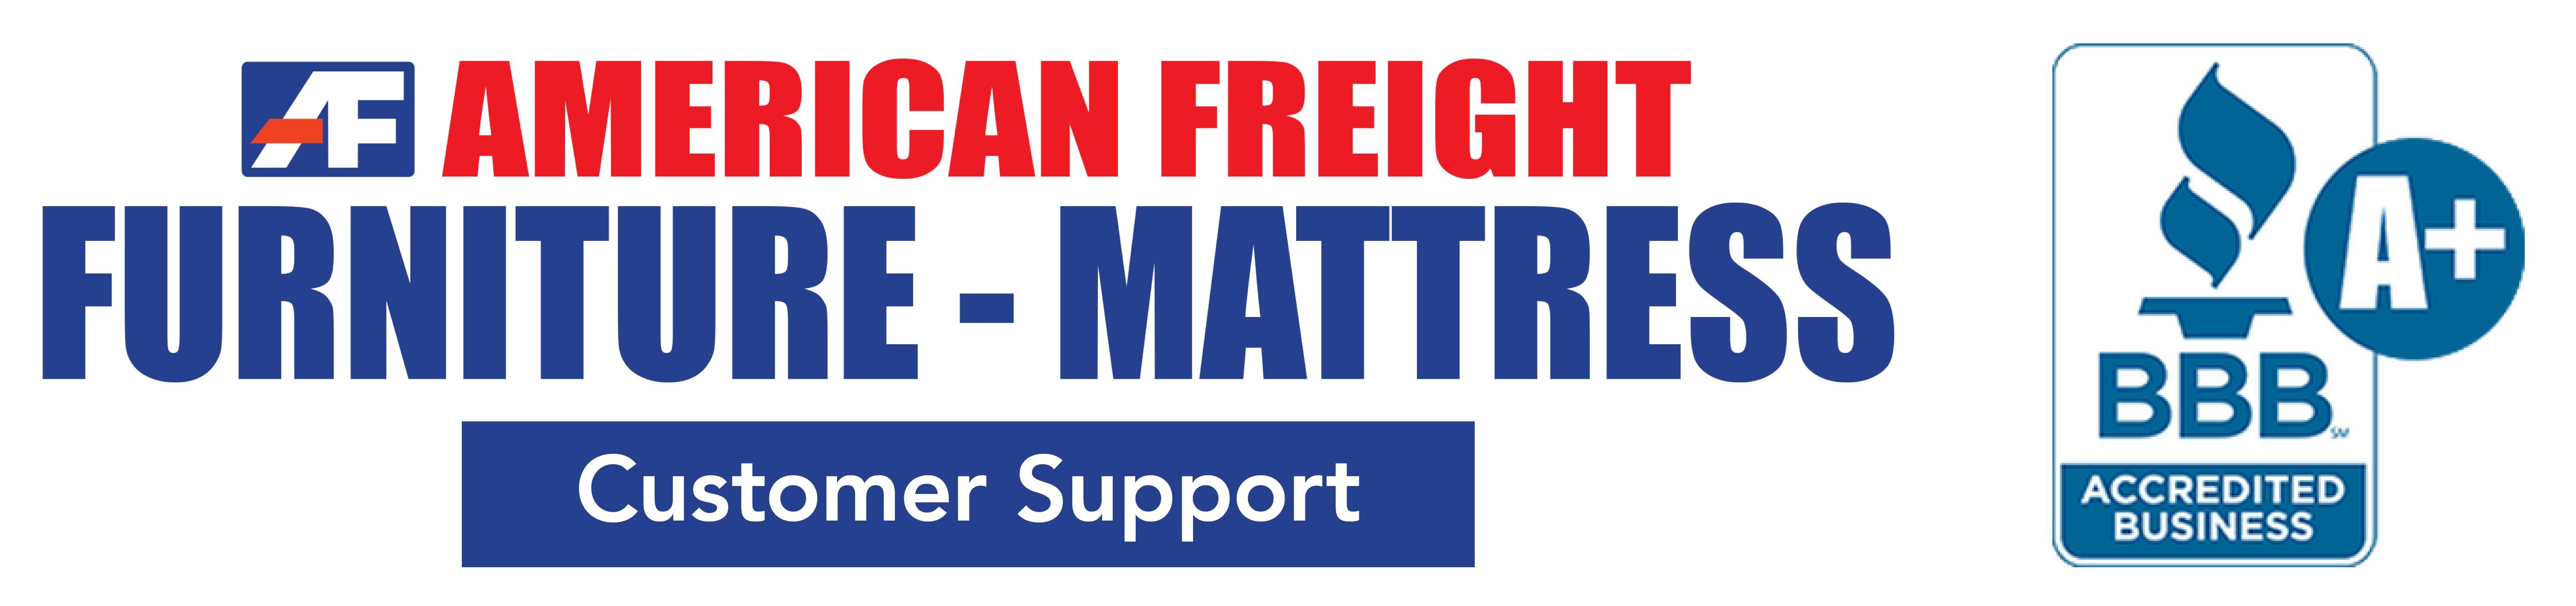 American Freight Support Center